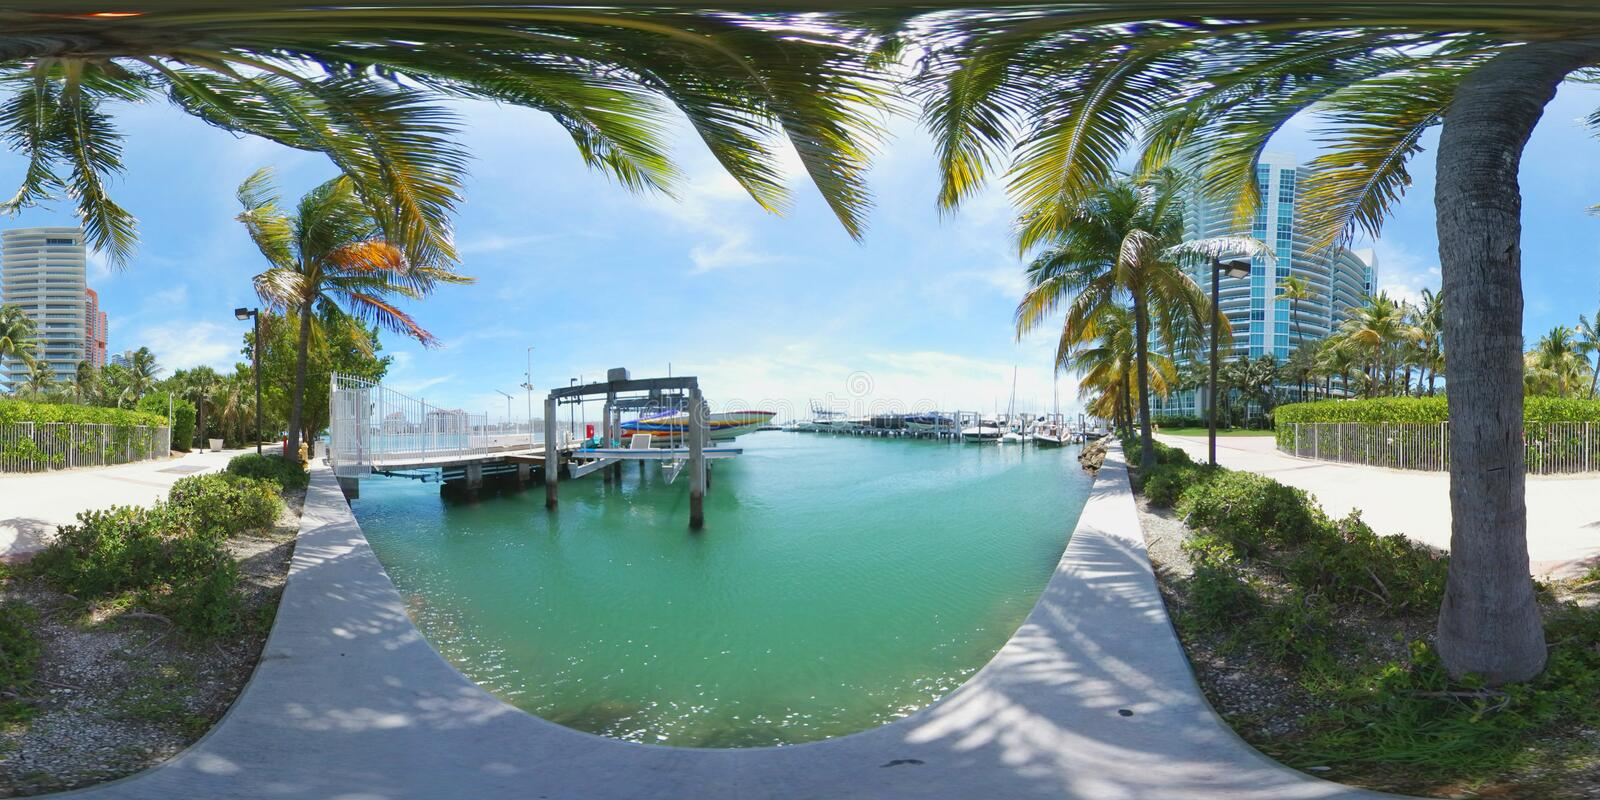 360 vr image Miami Beach Marina. Stock photo of the Miami Beach Marina shot with a spherical 360 vr camera stock photography